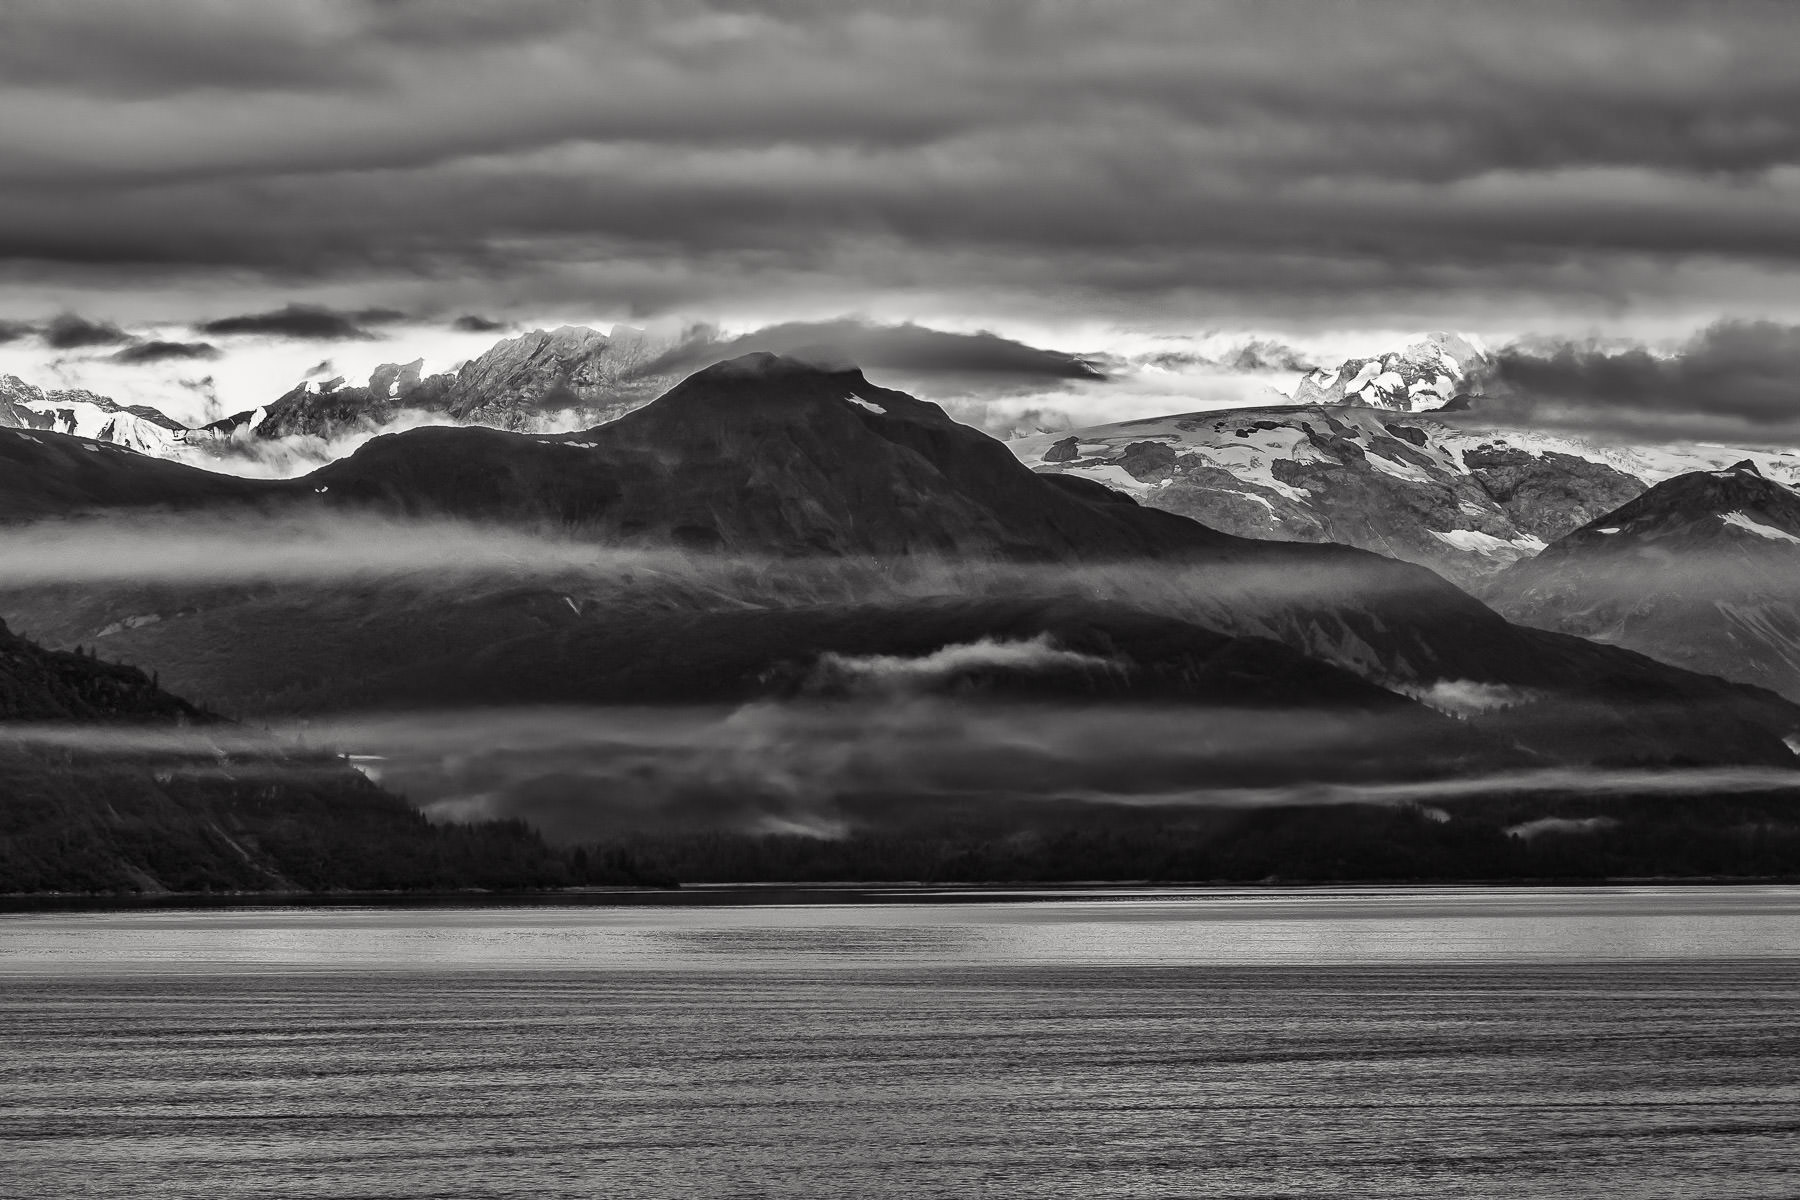 Wispy clouds hover around mountains rising from Alaska's Glacier Bay.